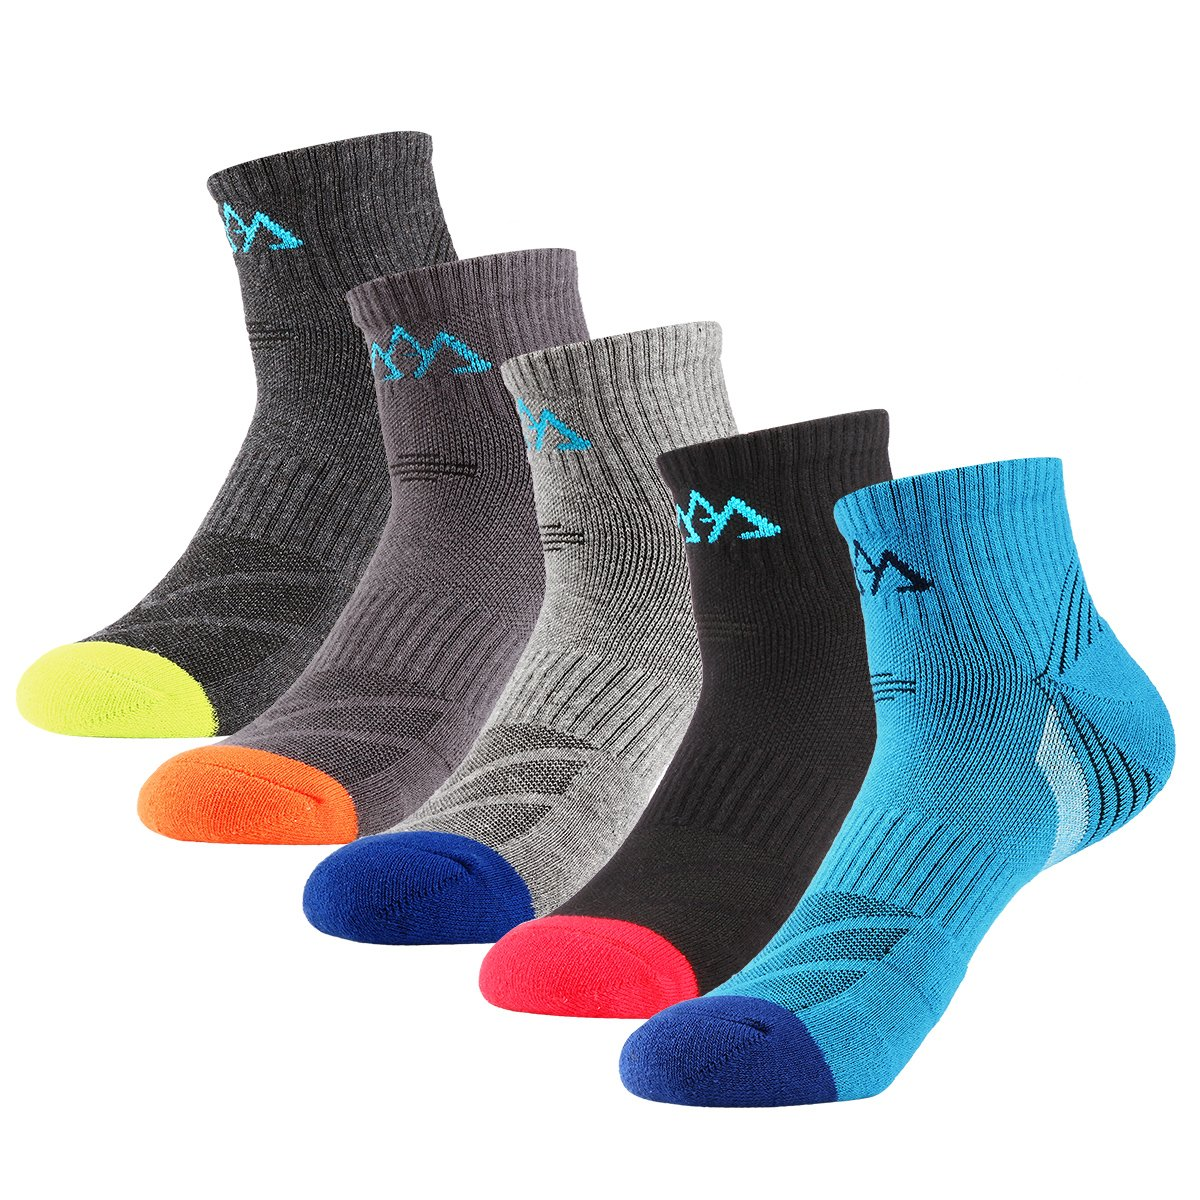 Will Well 5 Pack Mens Hiking Socks, Micro Crew Half Thickness Cushion Running Sports Performance Summer by Will Well (Image #1)